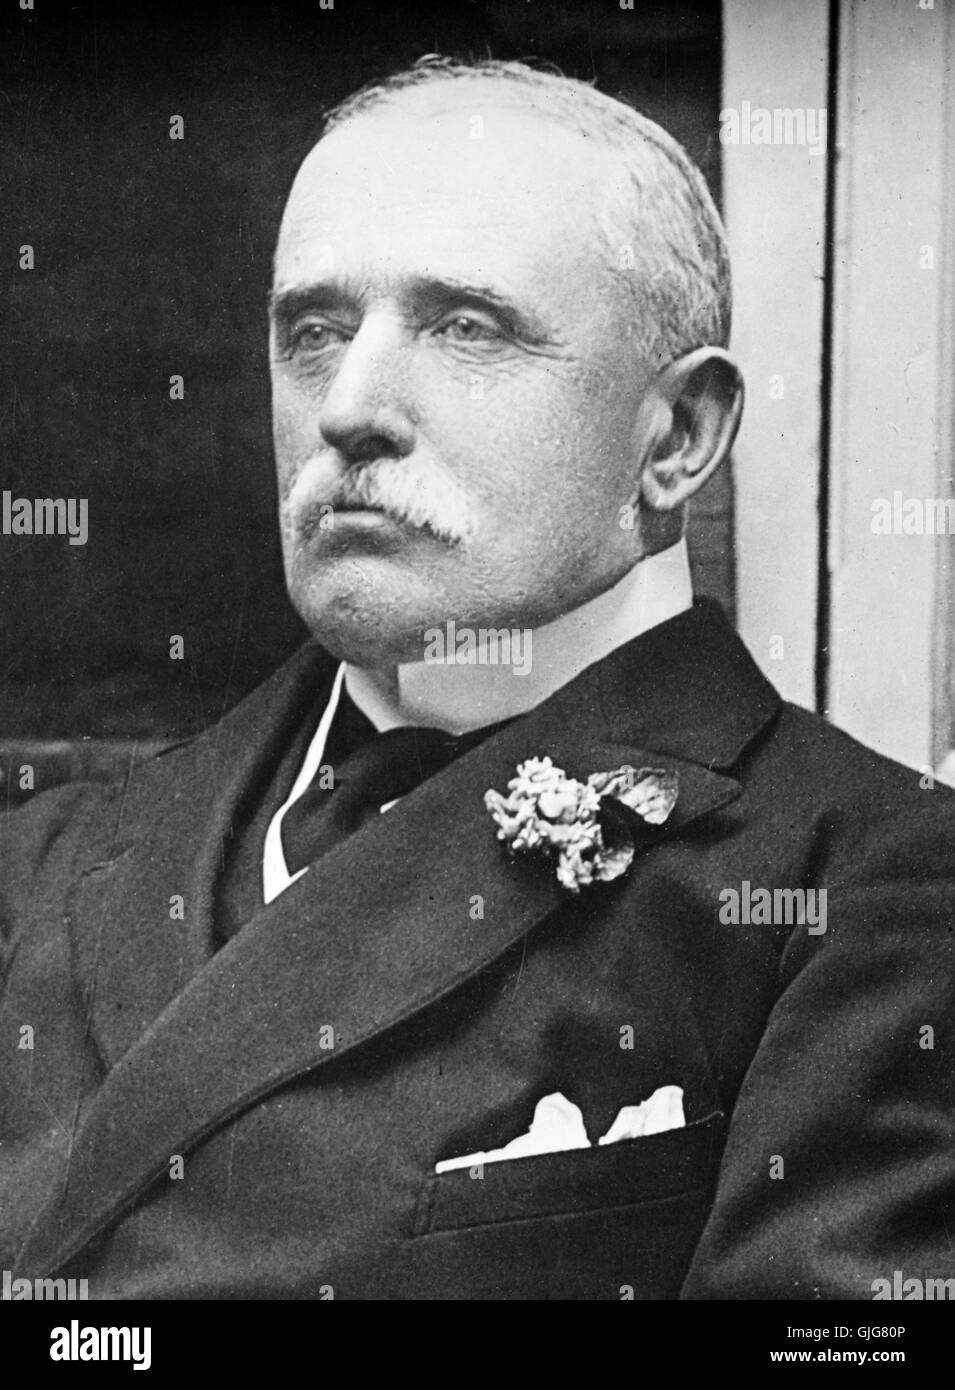 'John French', 1st Earl of Ypres - Stock Image